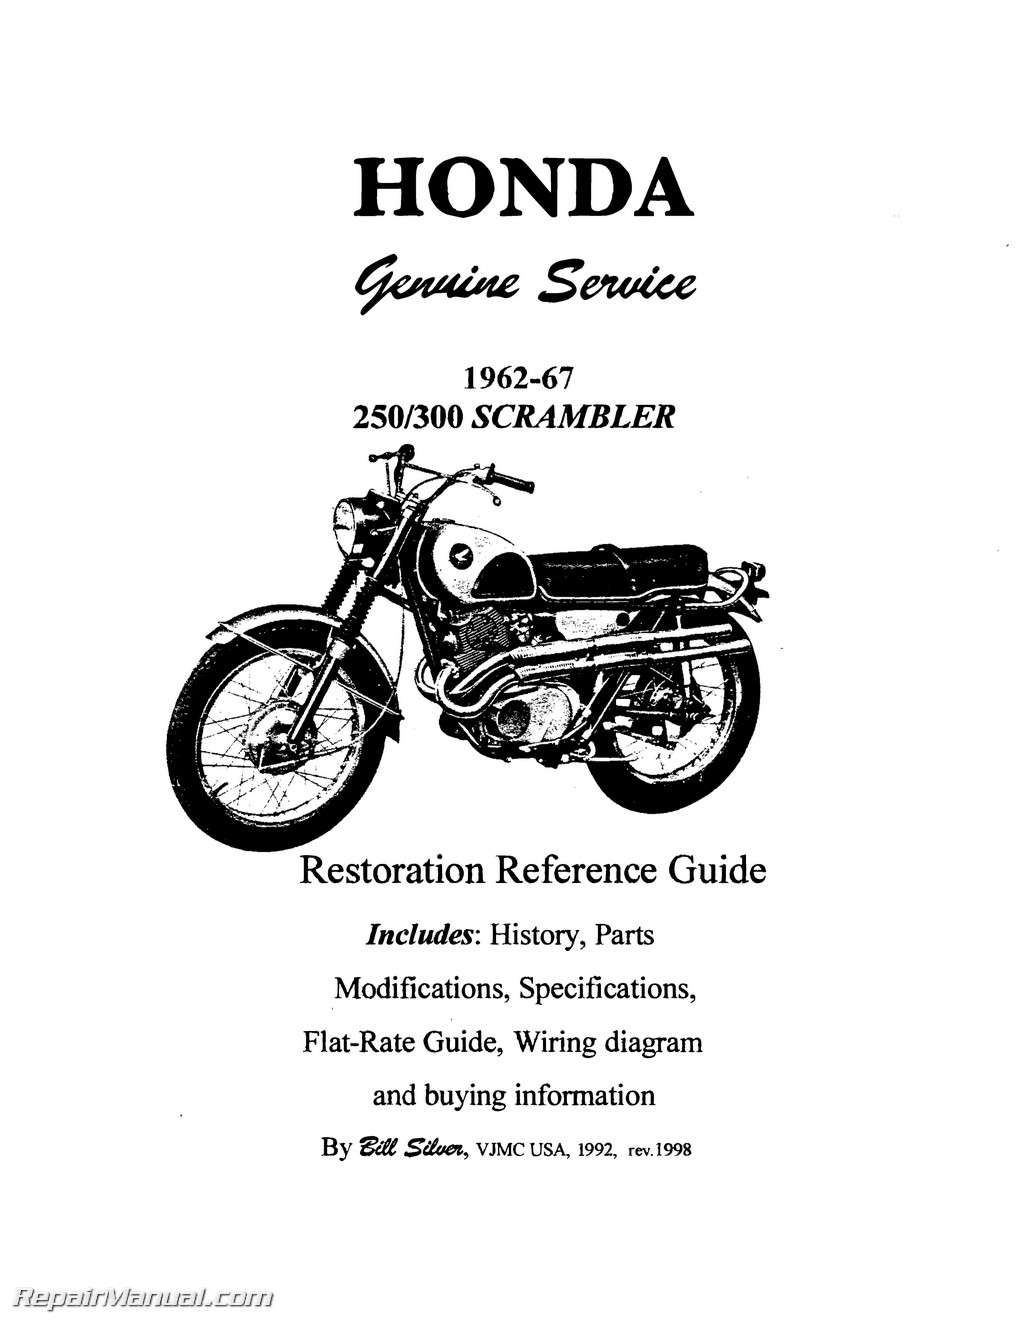 honda superhawk scrambler motorcycle restoration reference guide honda superhawk scrambler motorcycle restoration reference guide page 4